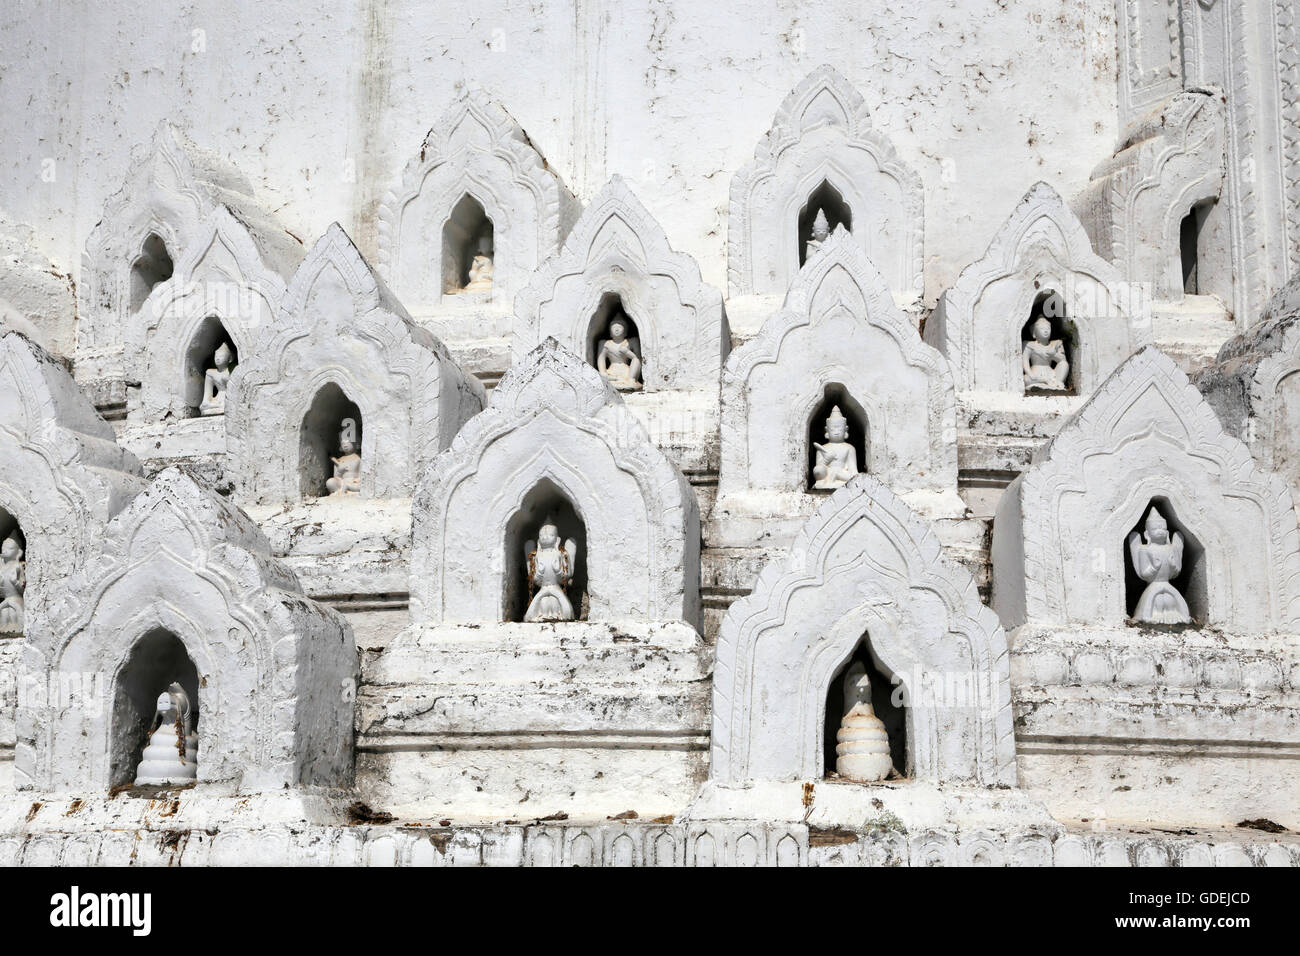 Architectural feature of Hsinbyume Pagoda, Mingun, Myanmar - Stock Image